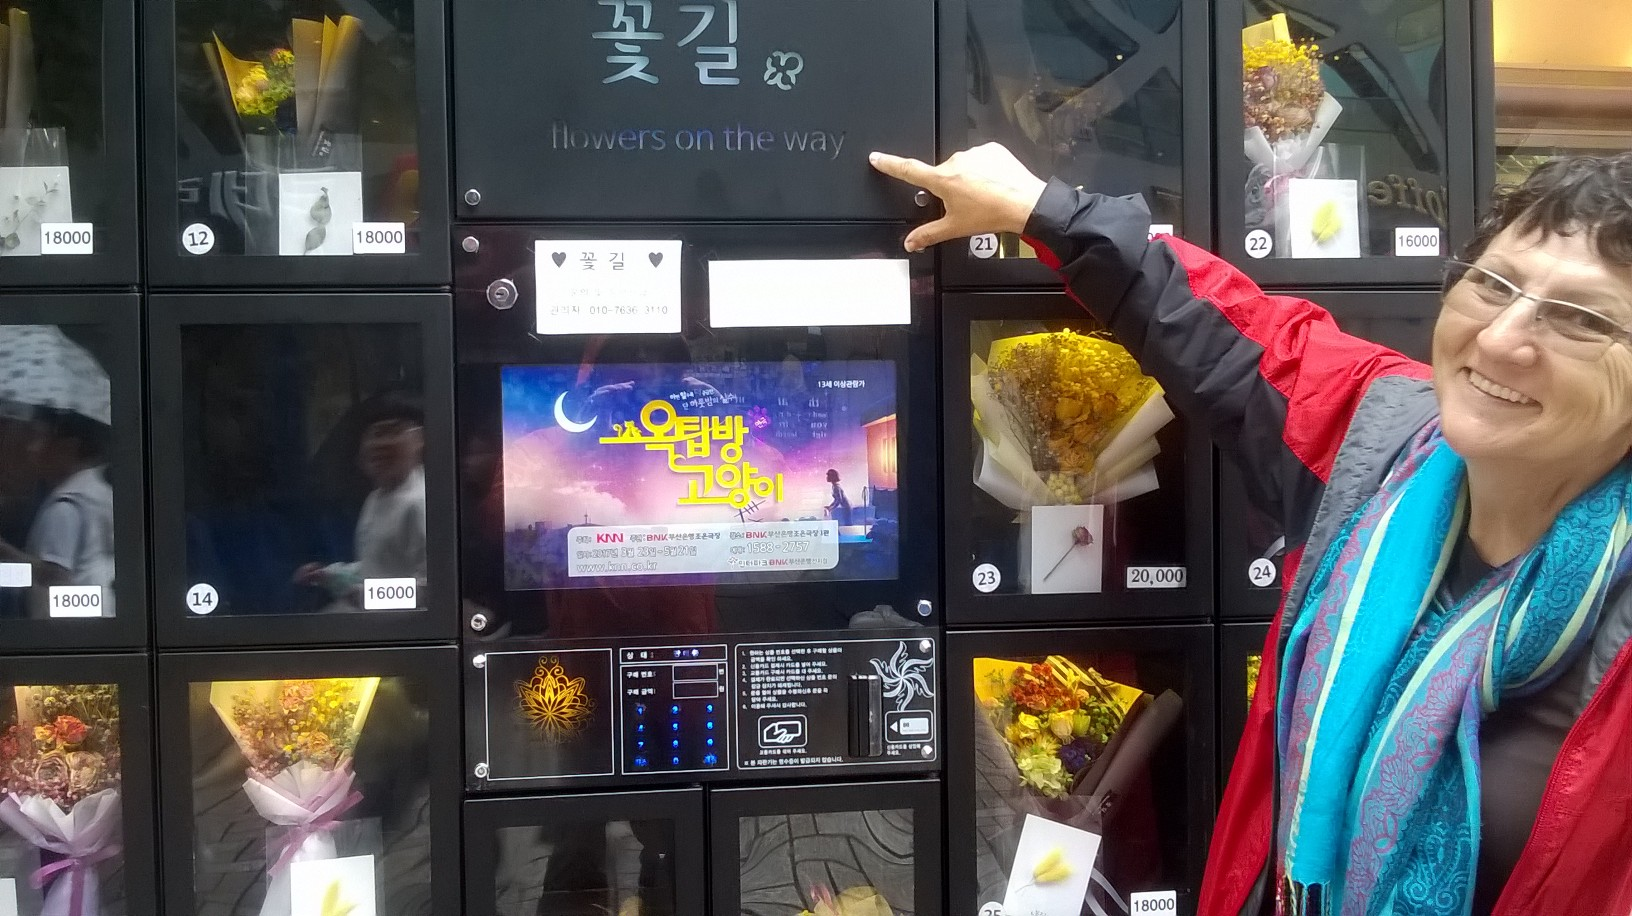 Selling flowers to-go out of a vending machine